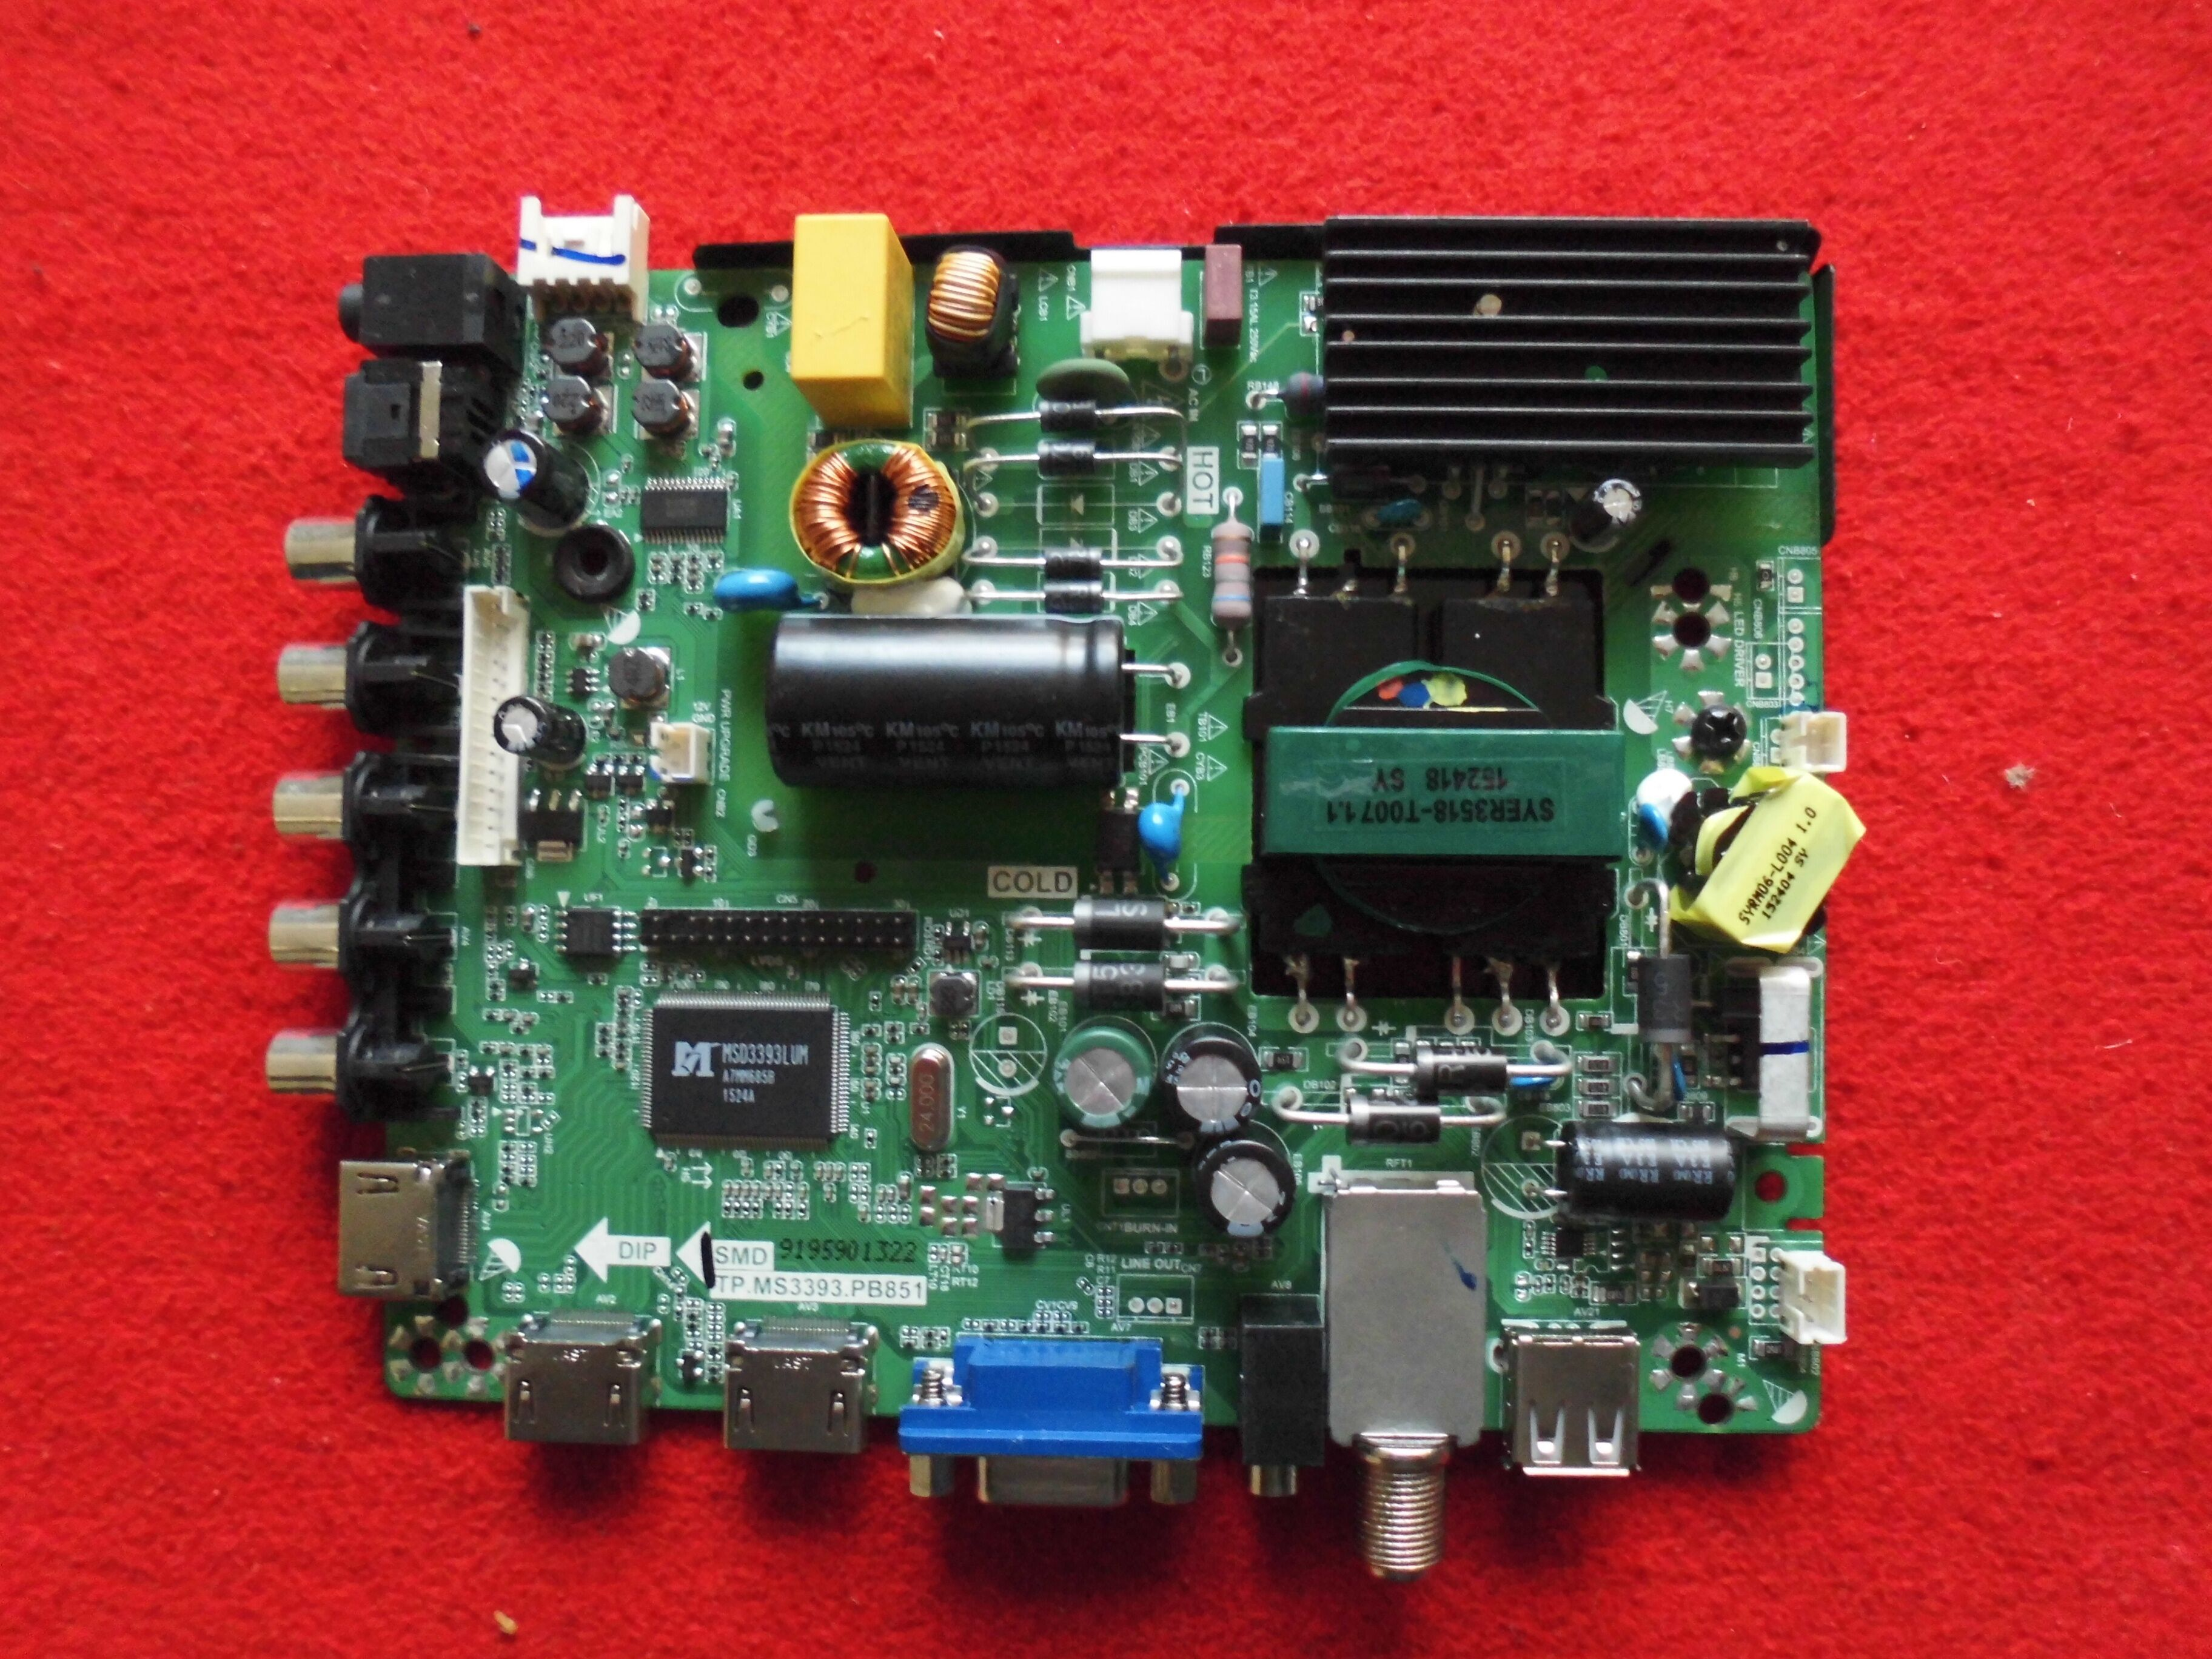 Hisense 173395 Main Board/Power Supply for 40H3E TP.MS3393.PB851